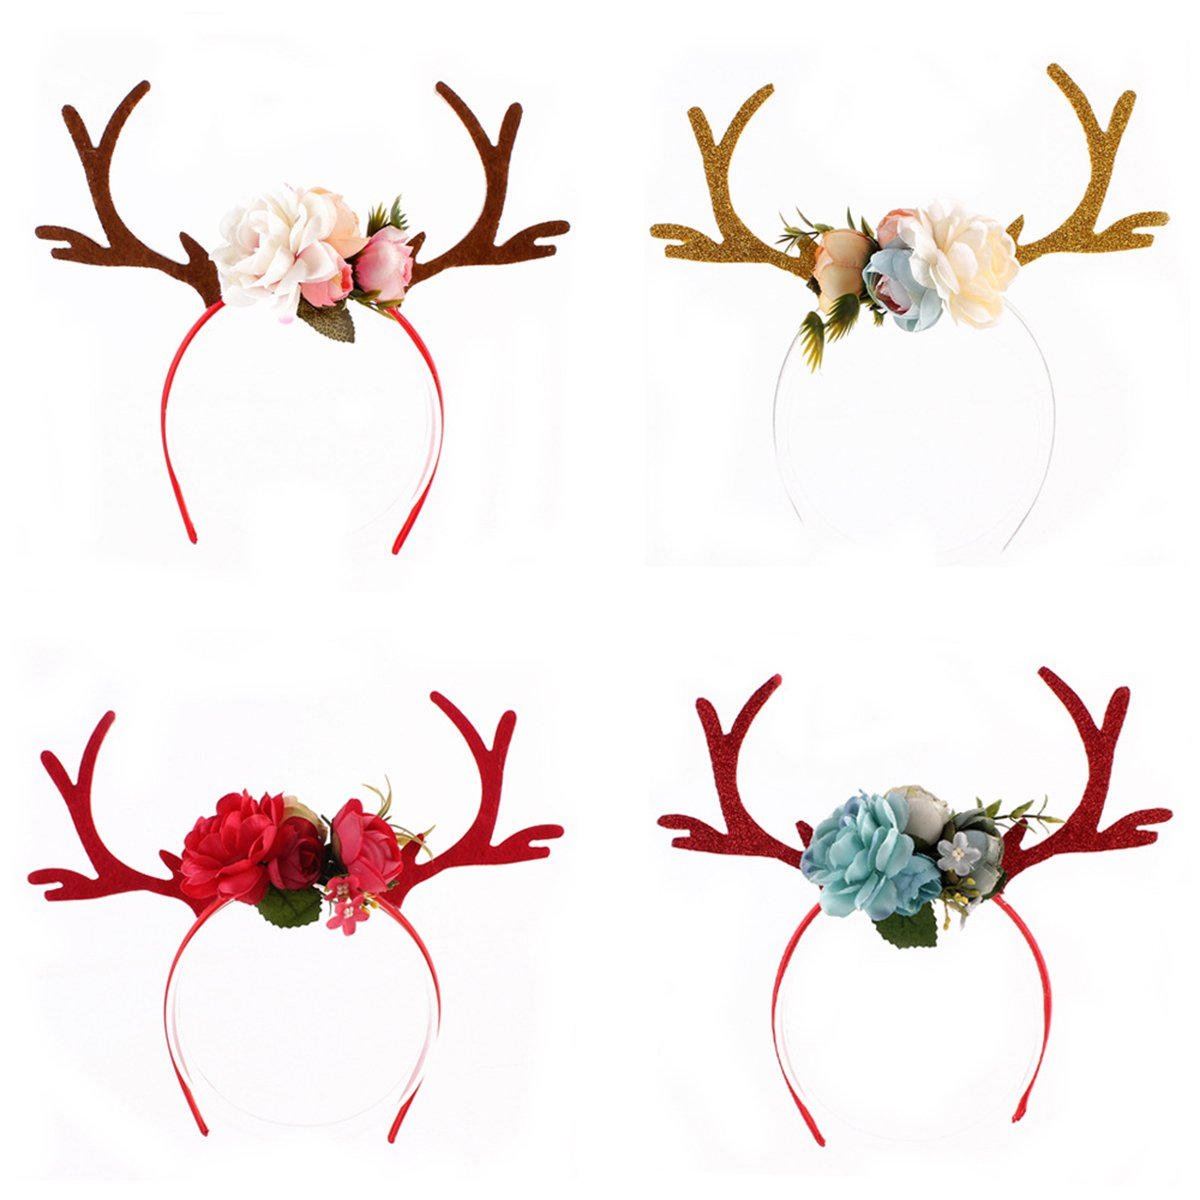 Tinksky 4pcs Deer Antler Headband with Flowers Blossom Novelty Party Hair Band Head Band Christmas Fancy Dress Costumes Accessory